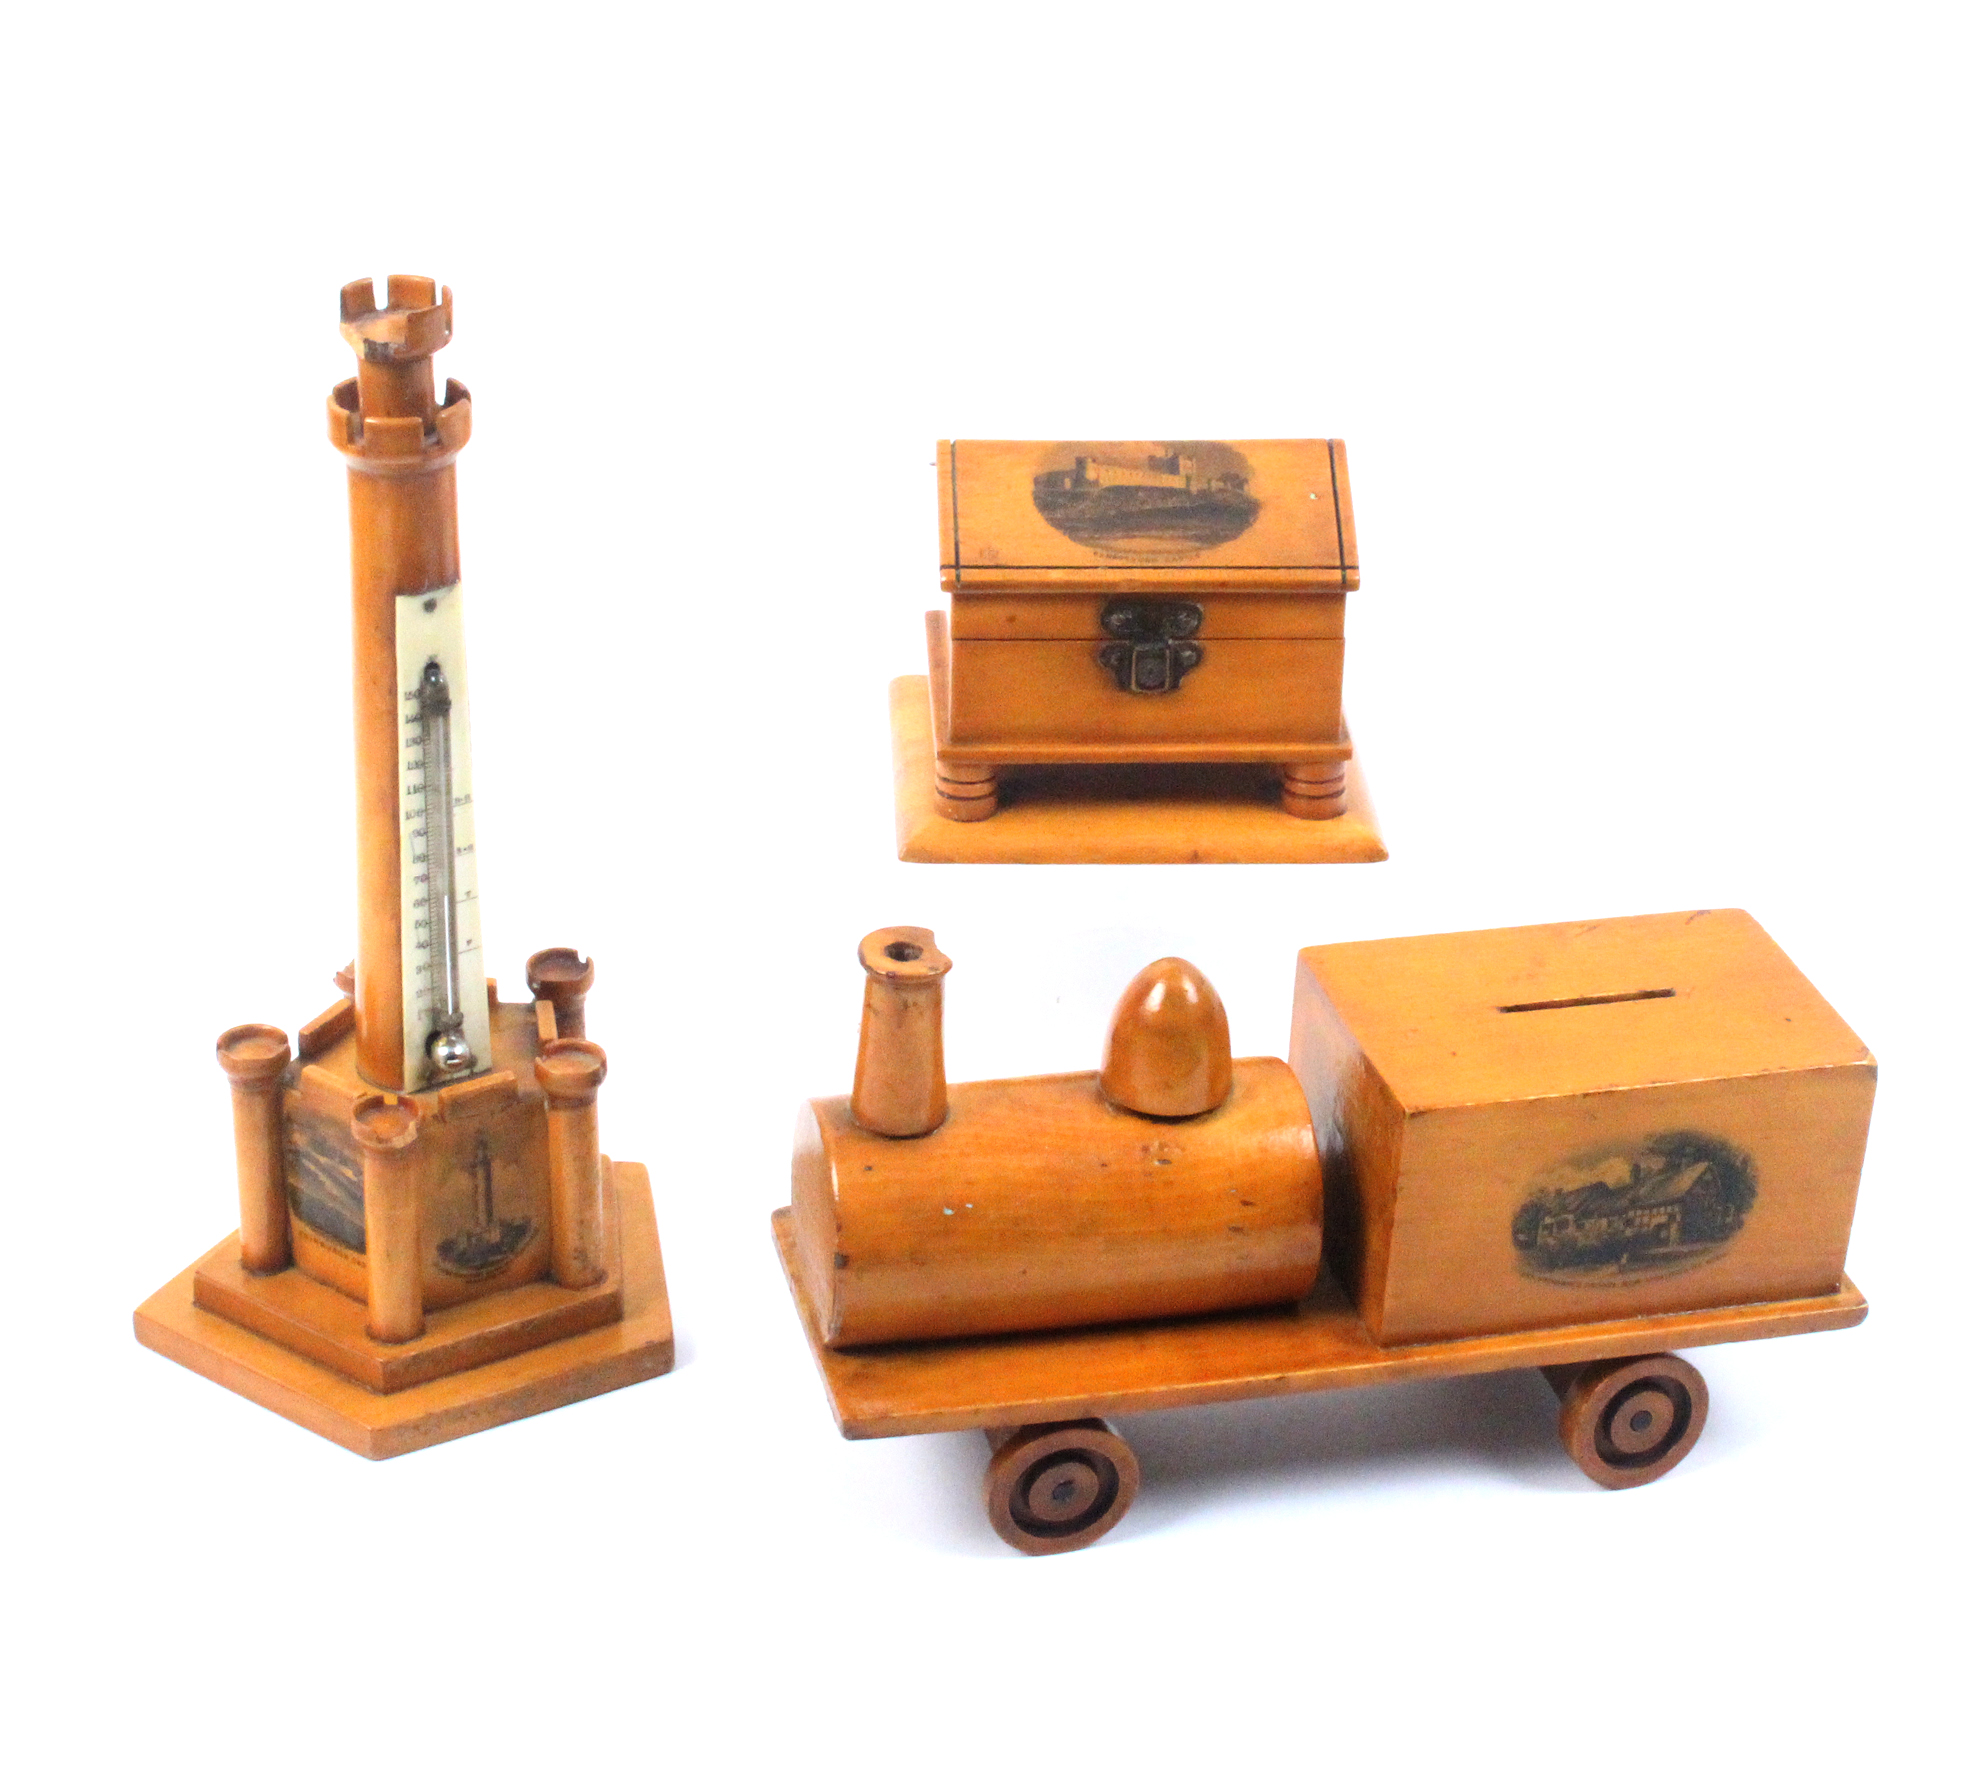 Mauchline ware - three pieces - comprising a money box in the form of a train (Ann Hathaway's